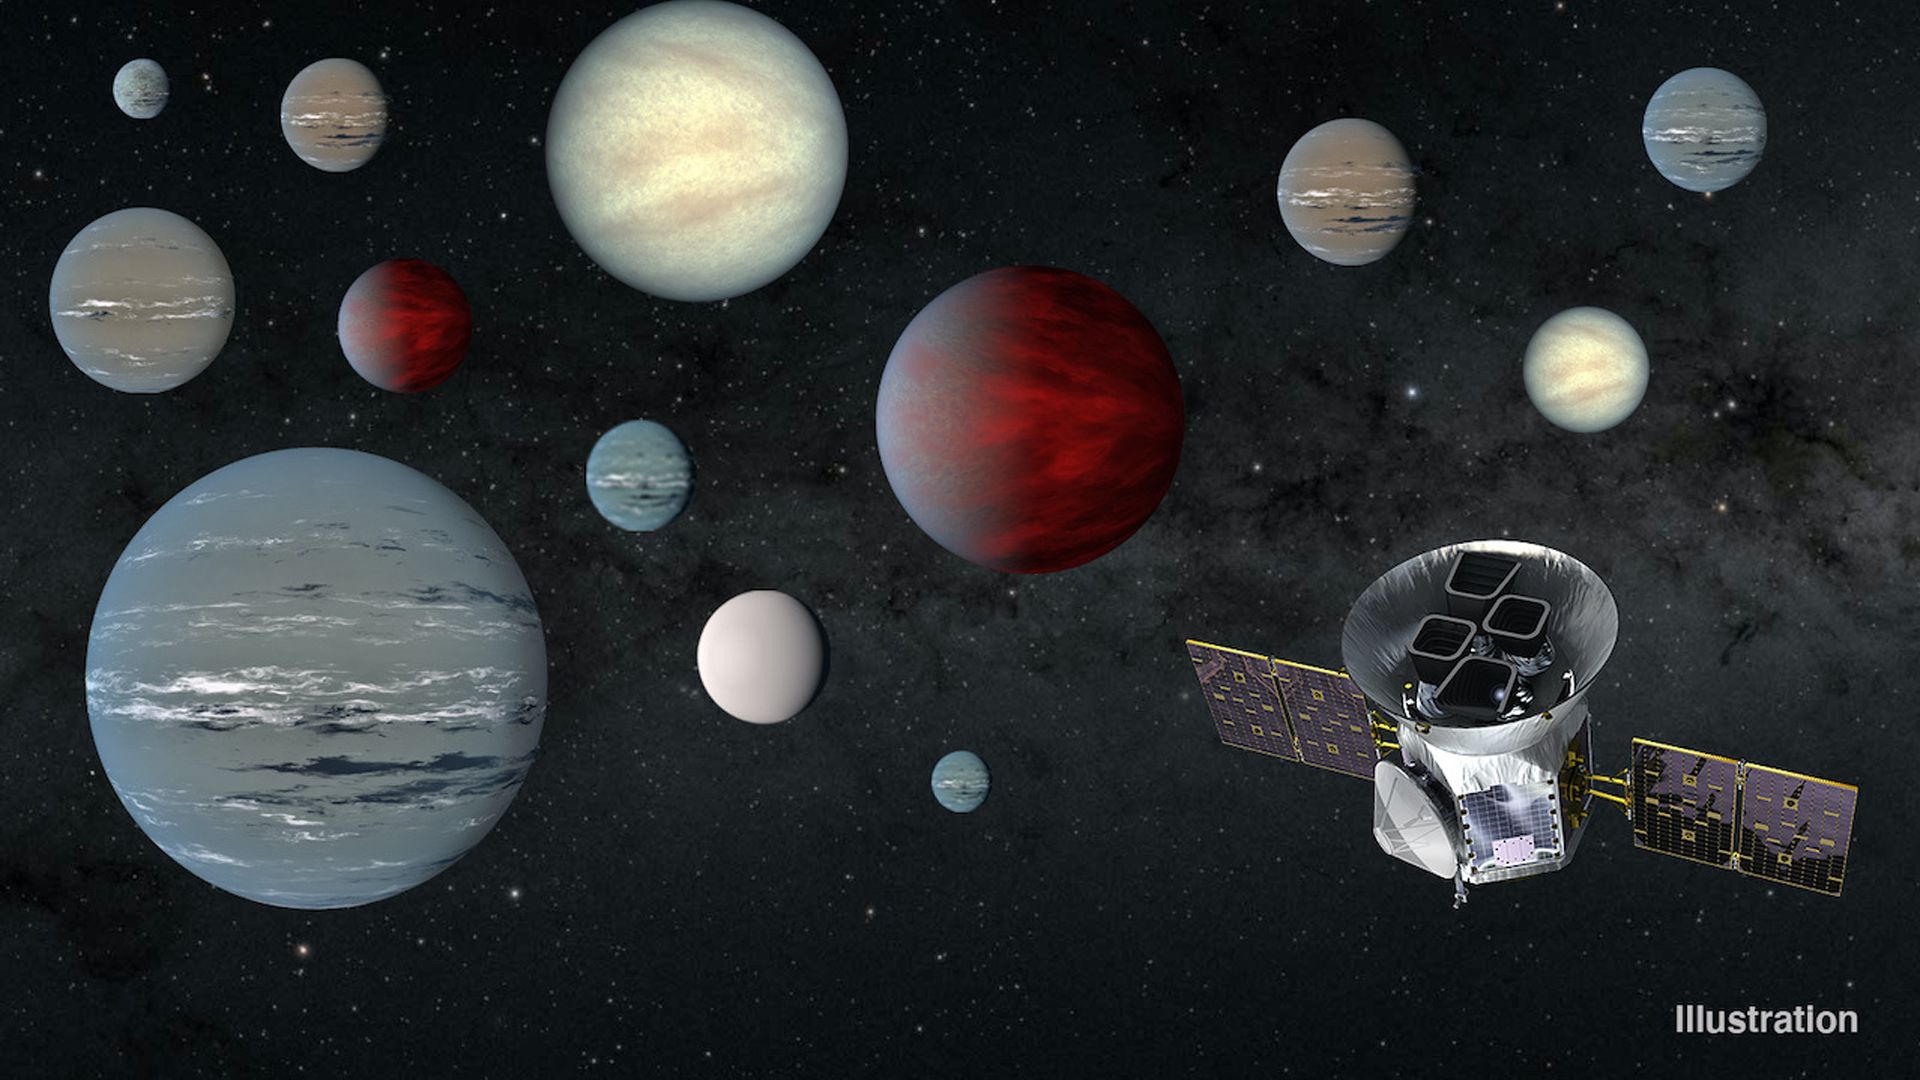 Illustration of potential exoplanets spotted by NASA's TESS spacecraft